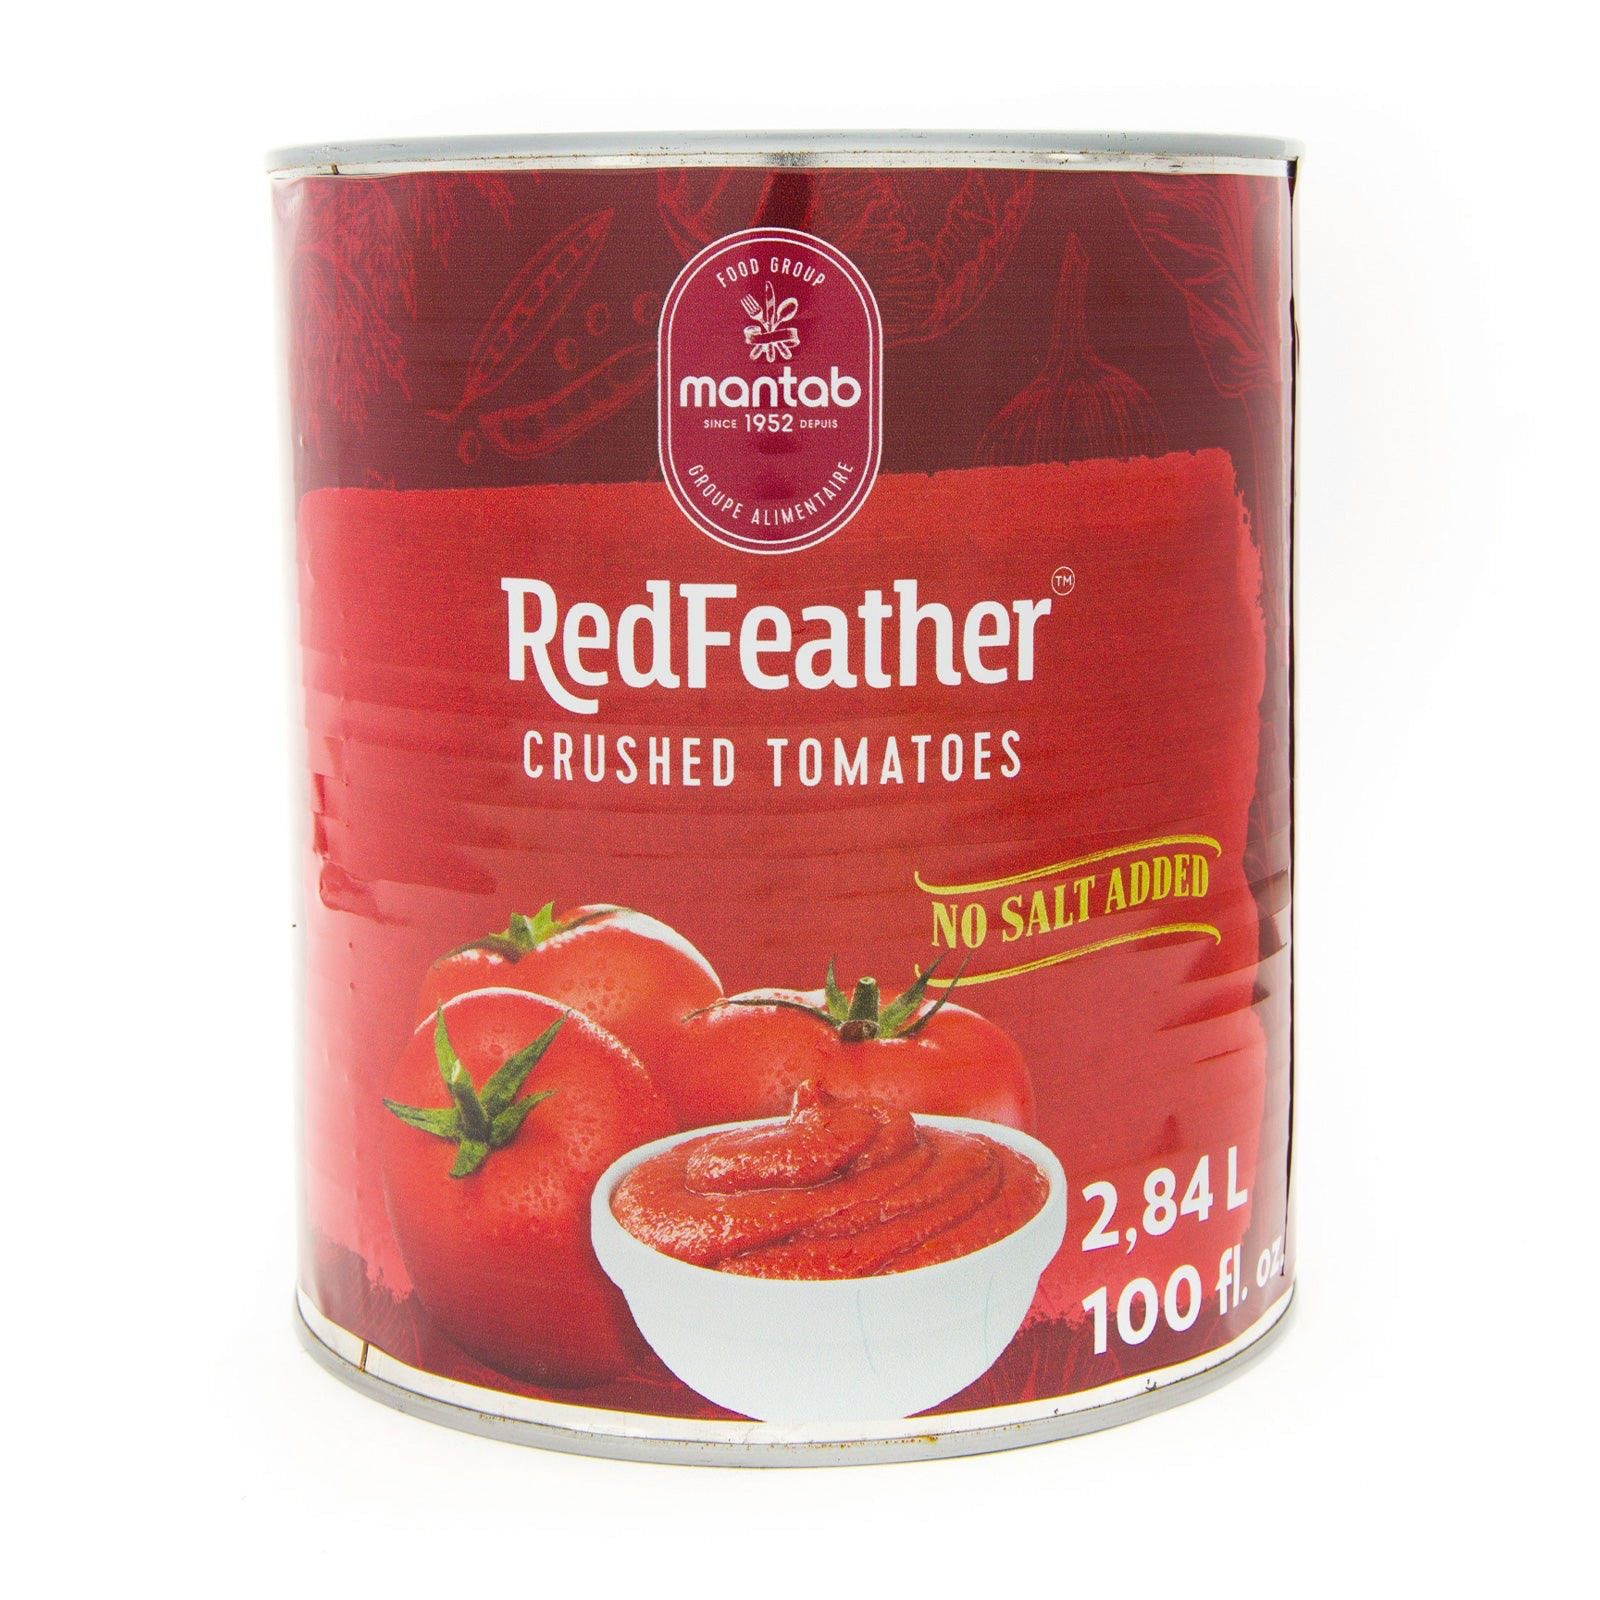 RED FEATHER Crushed tomatoes